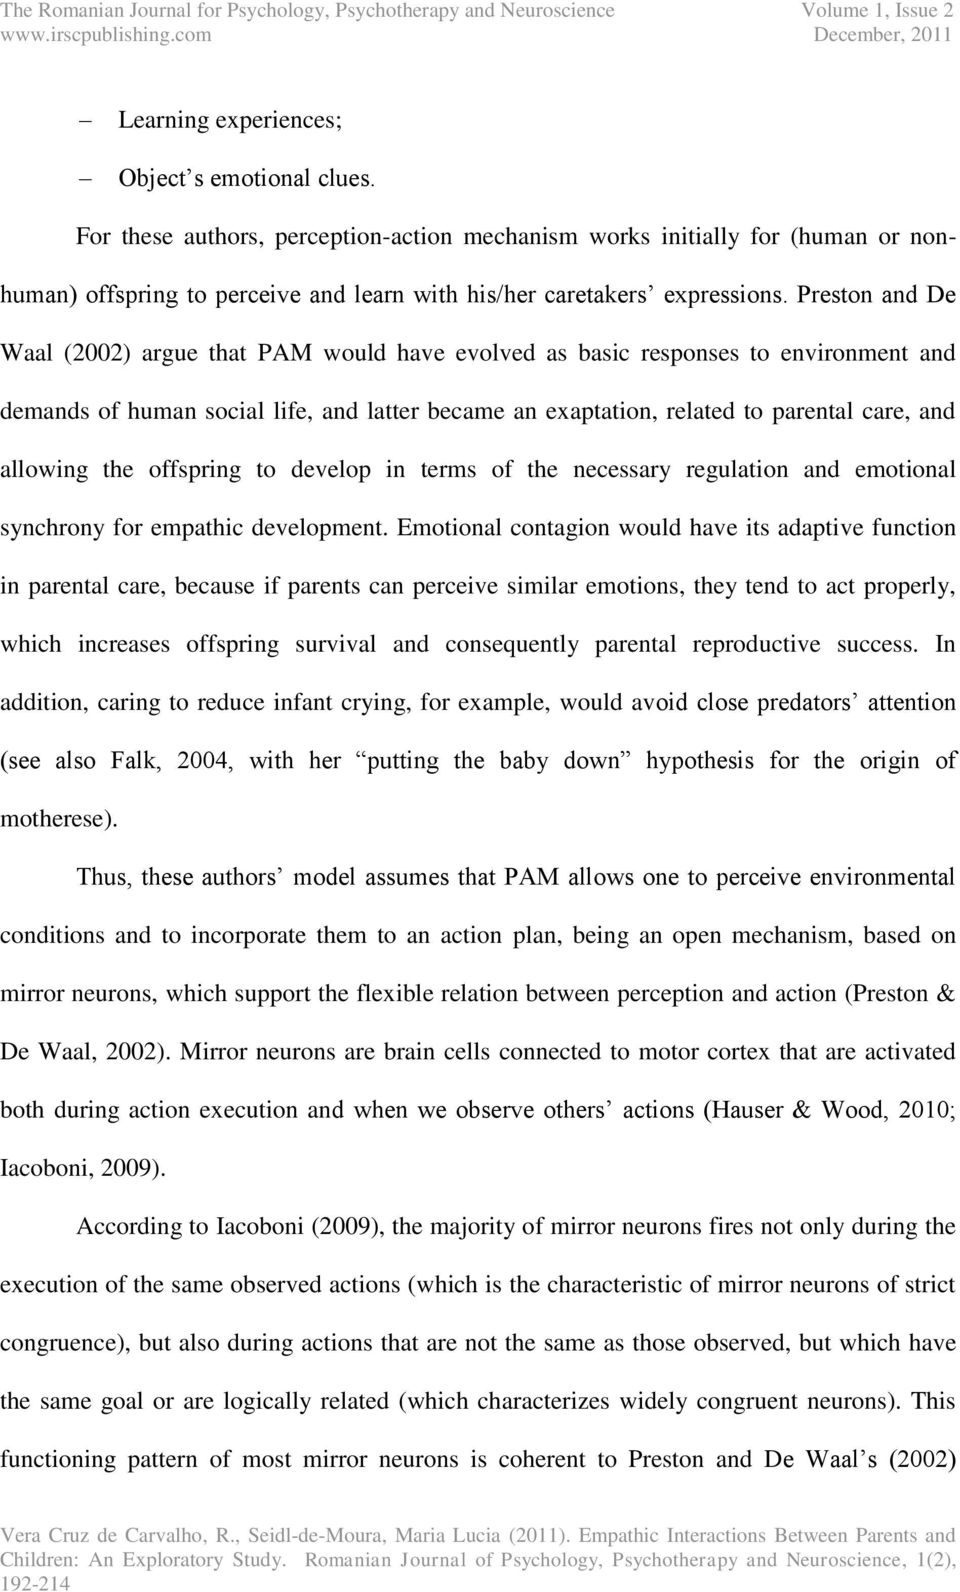 Preston and De Waal (2002) argue that PAM would have evolved as basic responses to environment and demands of human social life, and latter became an exaptation, related to parental care, and